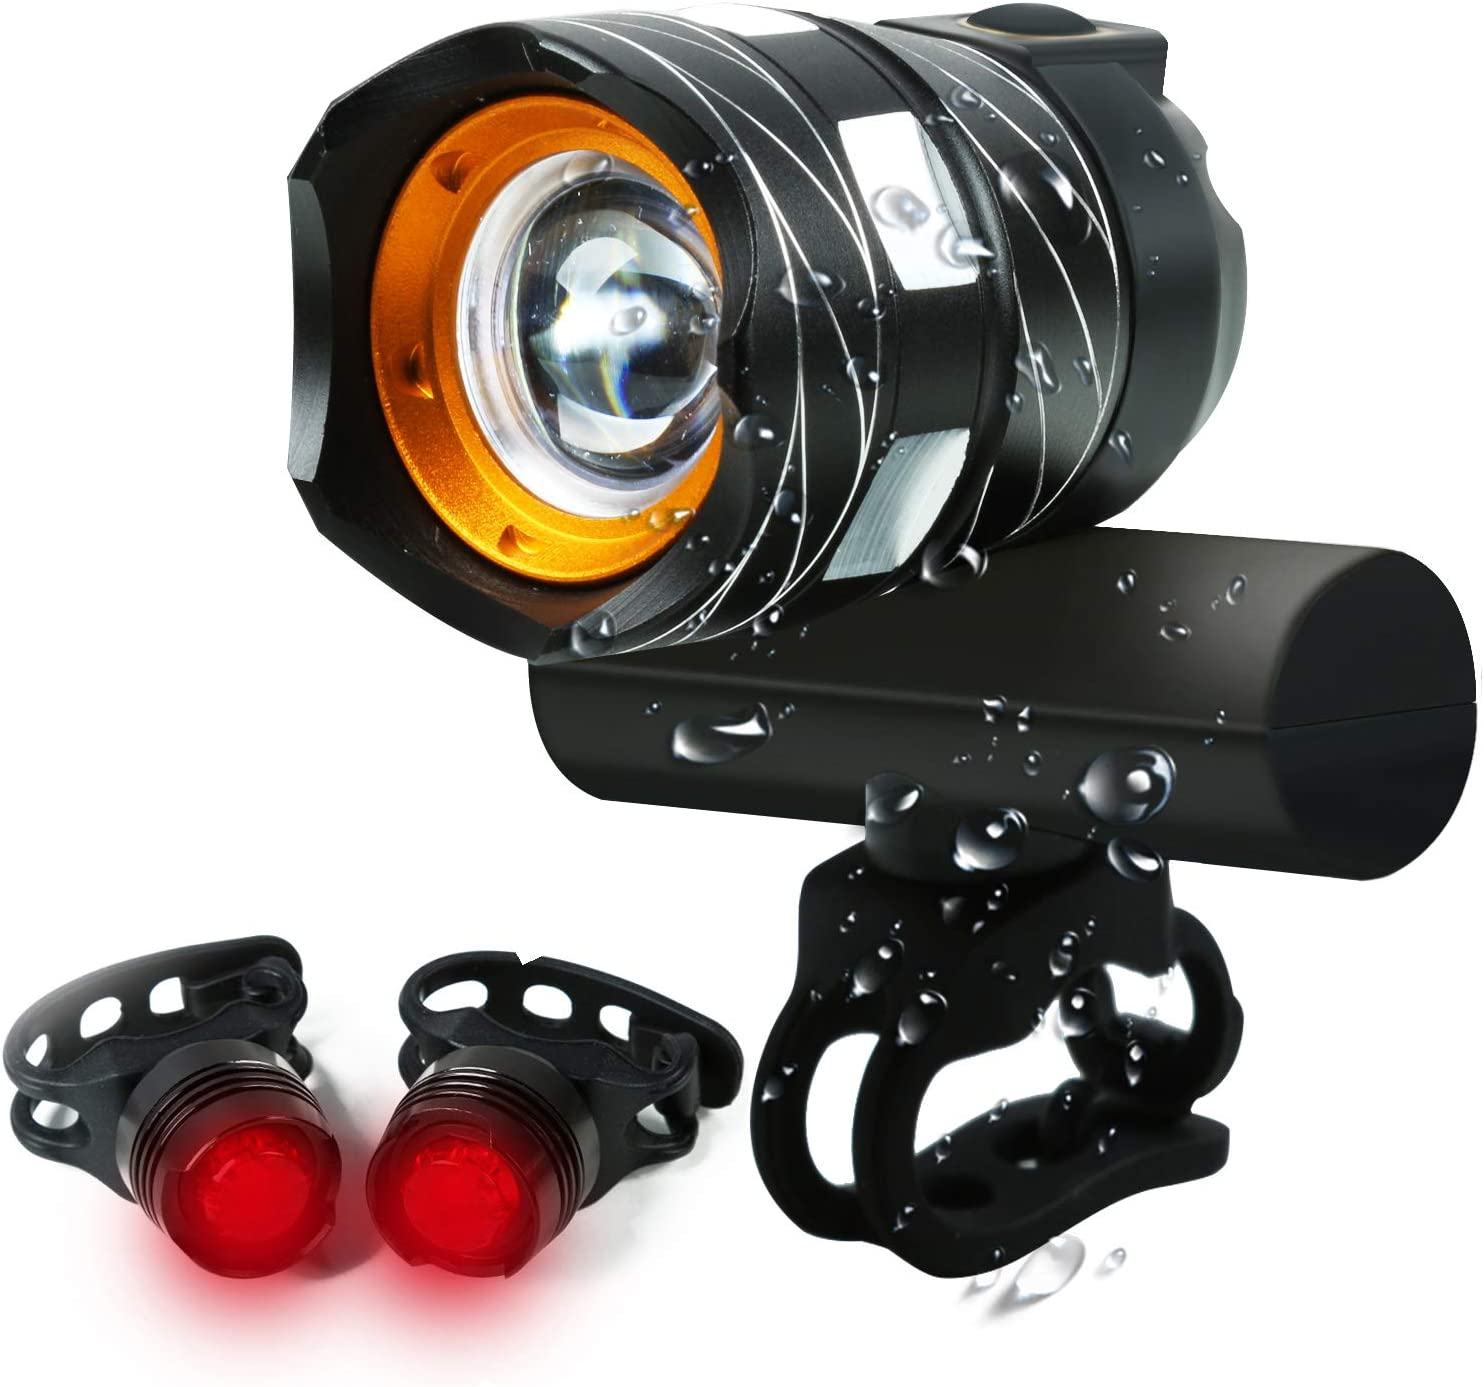 XPG LED Bike Front Light Lamp Rechargeable Bicycle Headlight 400ft Visibility